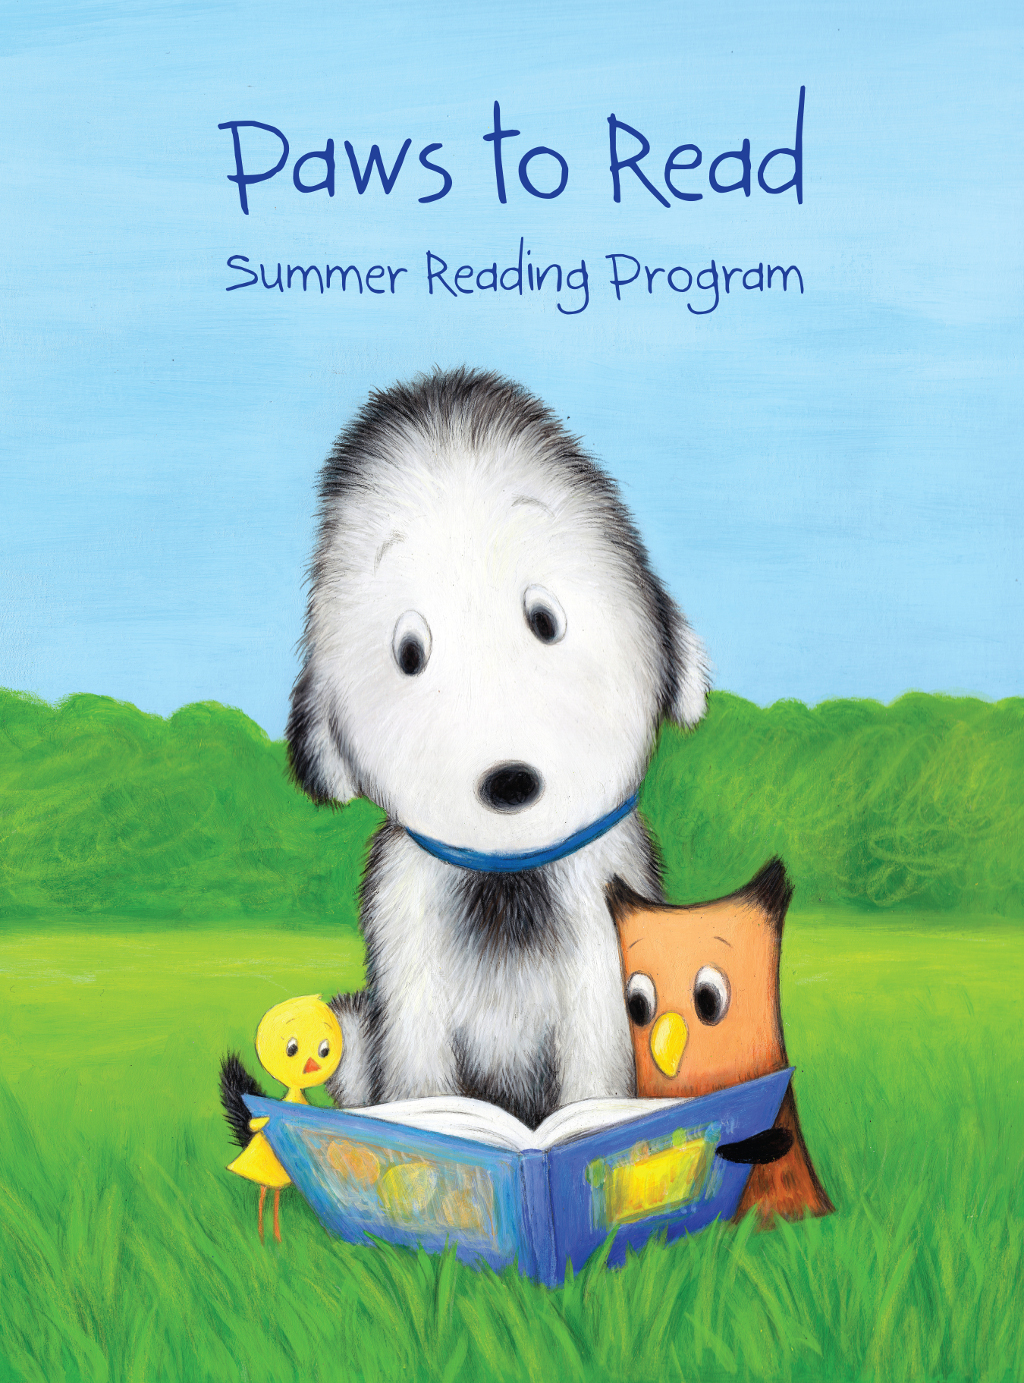 Paws to Read - 2017 Summer Reading Program